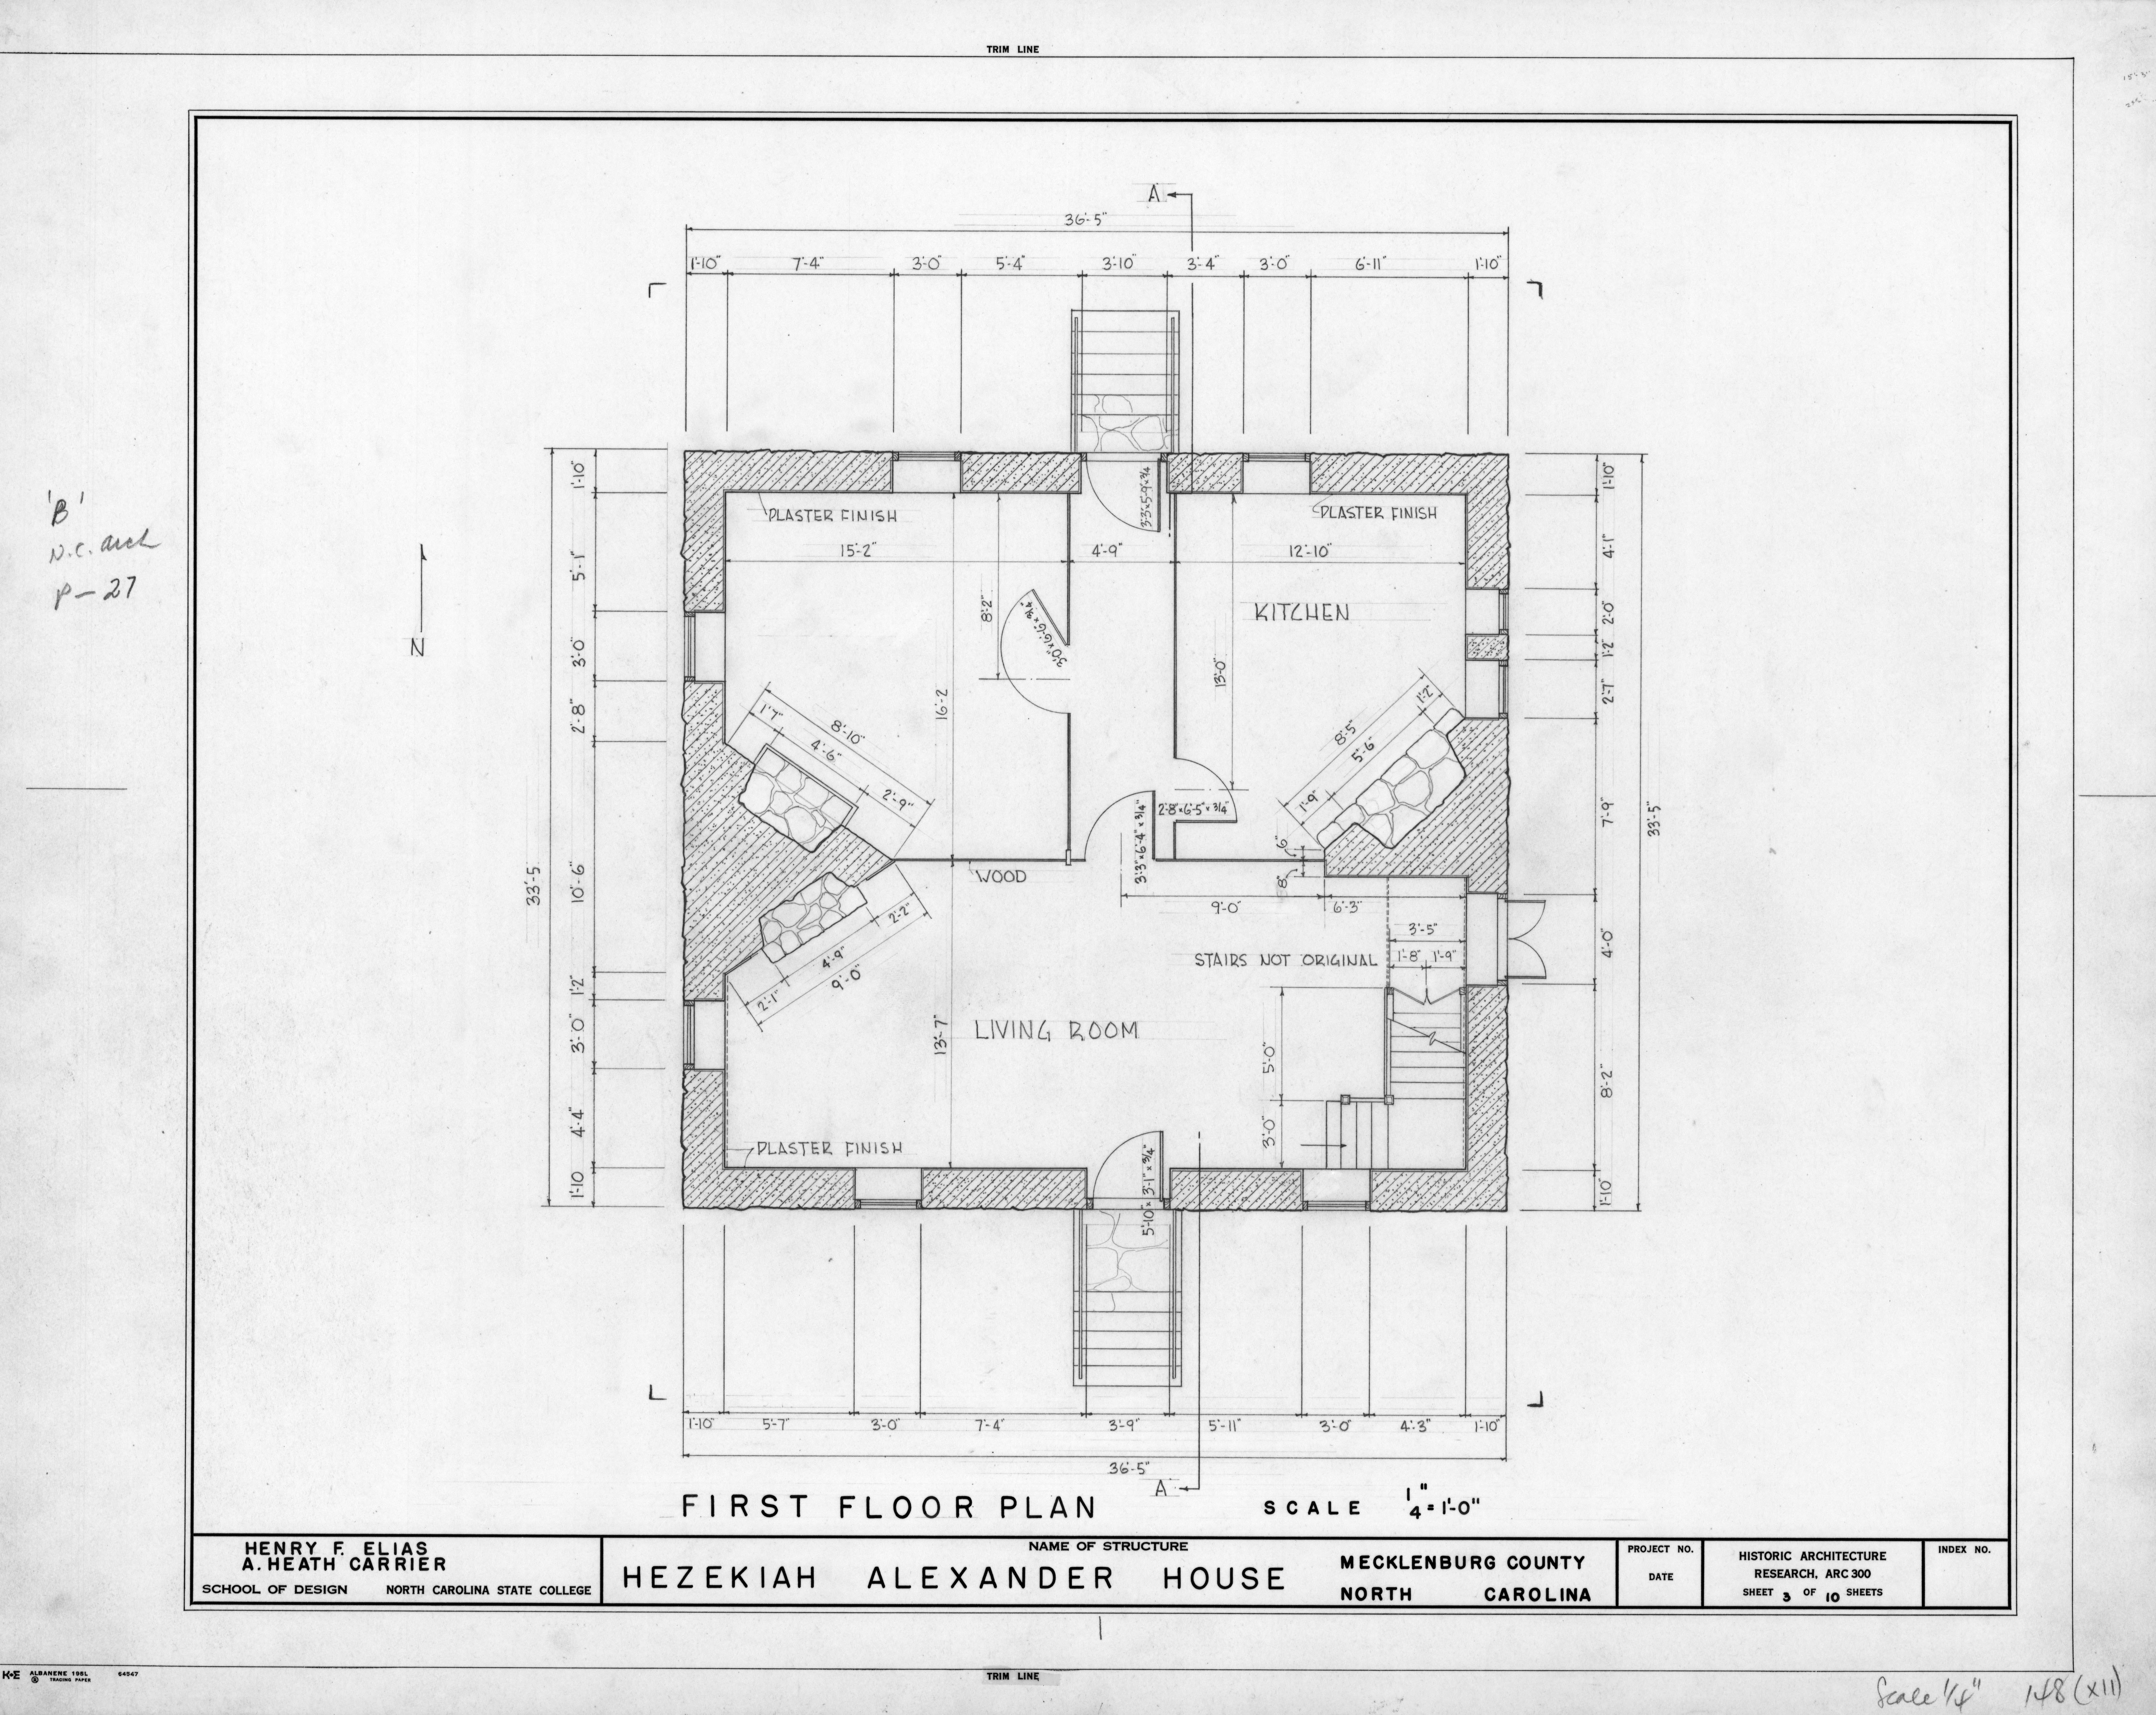 First Floor Plan Hezekiah Alexander House Mecklenburg